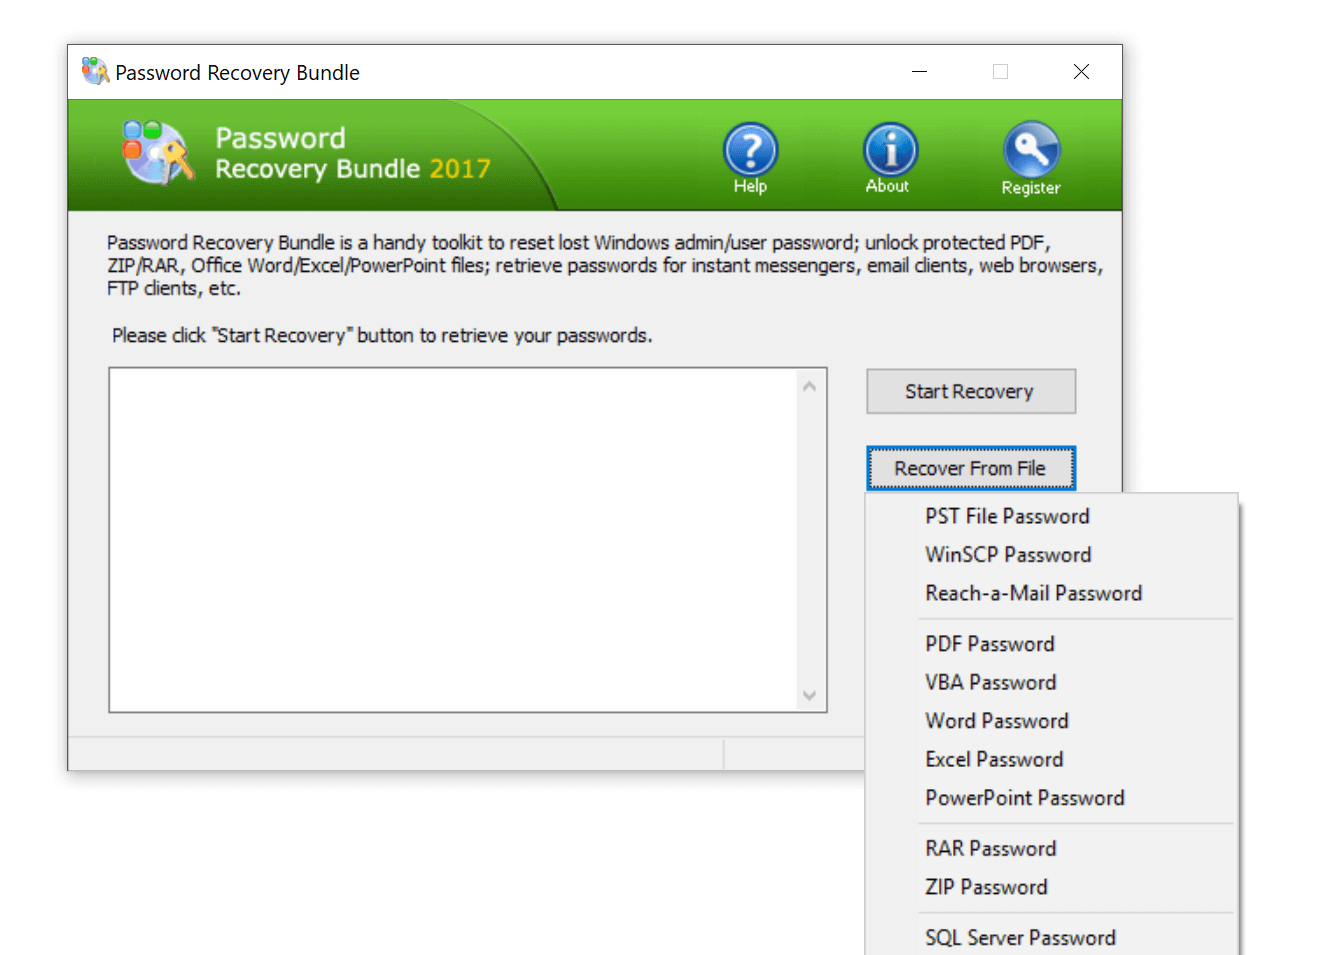 TechSpot + PC Unlocker giveaway: So you can reset your